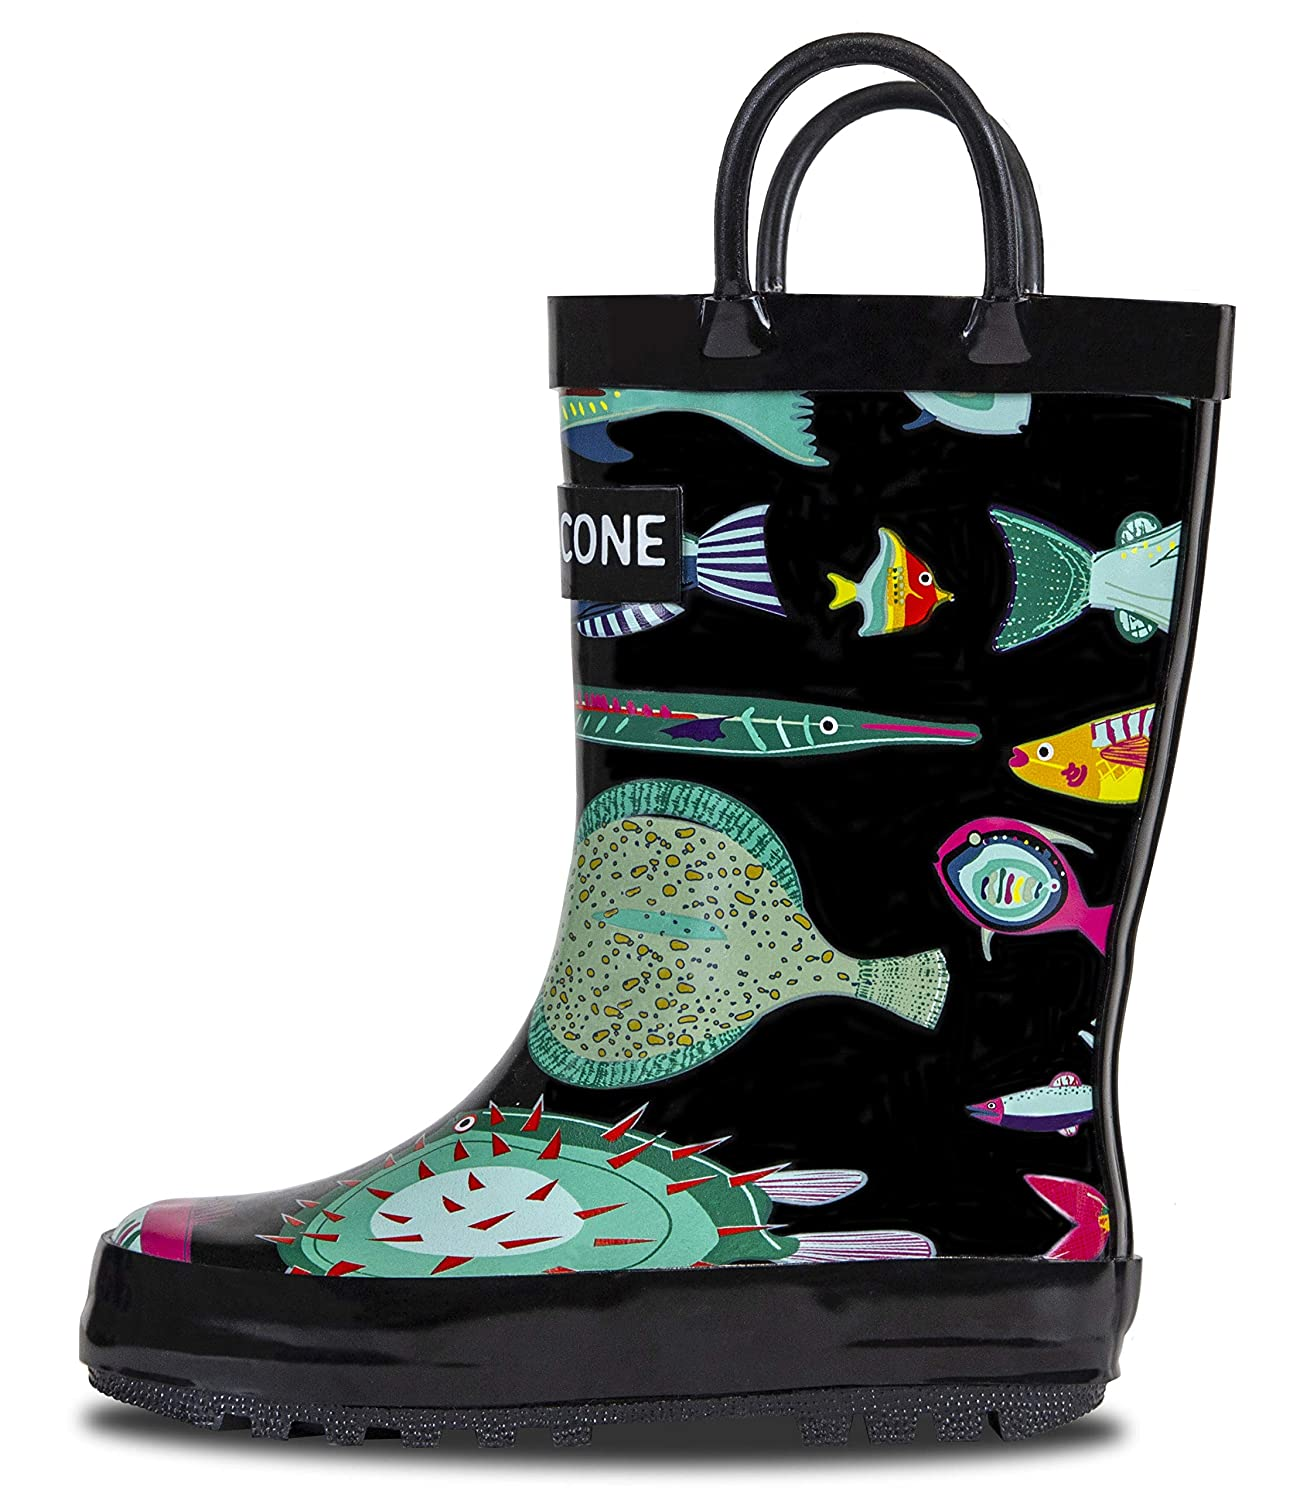 LONECONE Rain Boots with Easy-On Handles in Fun Patterns for Toddlers and Kids LONE CONE